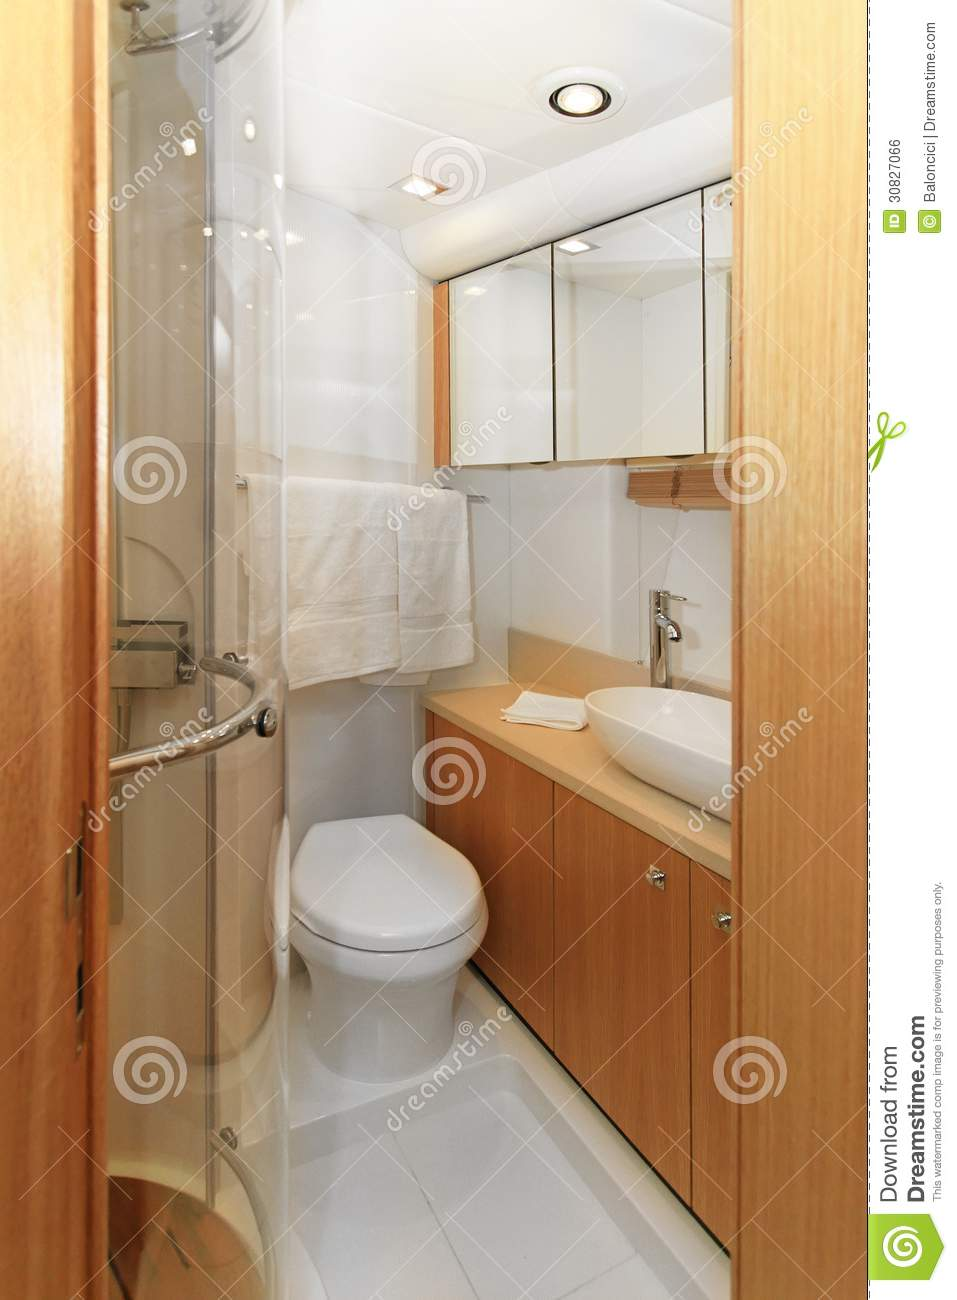 Bagno dell yacht